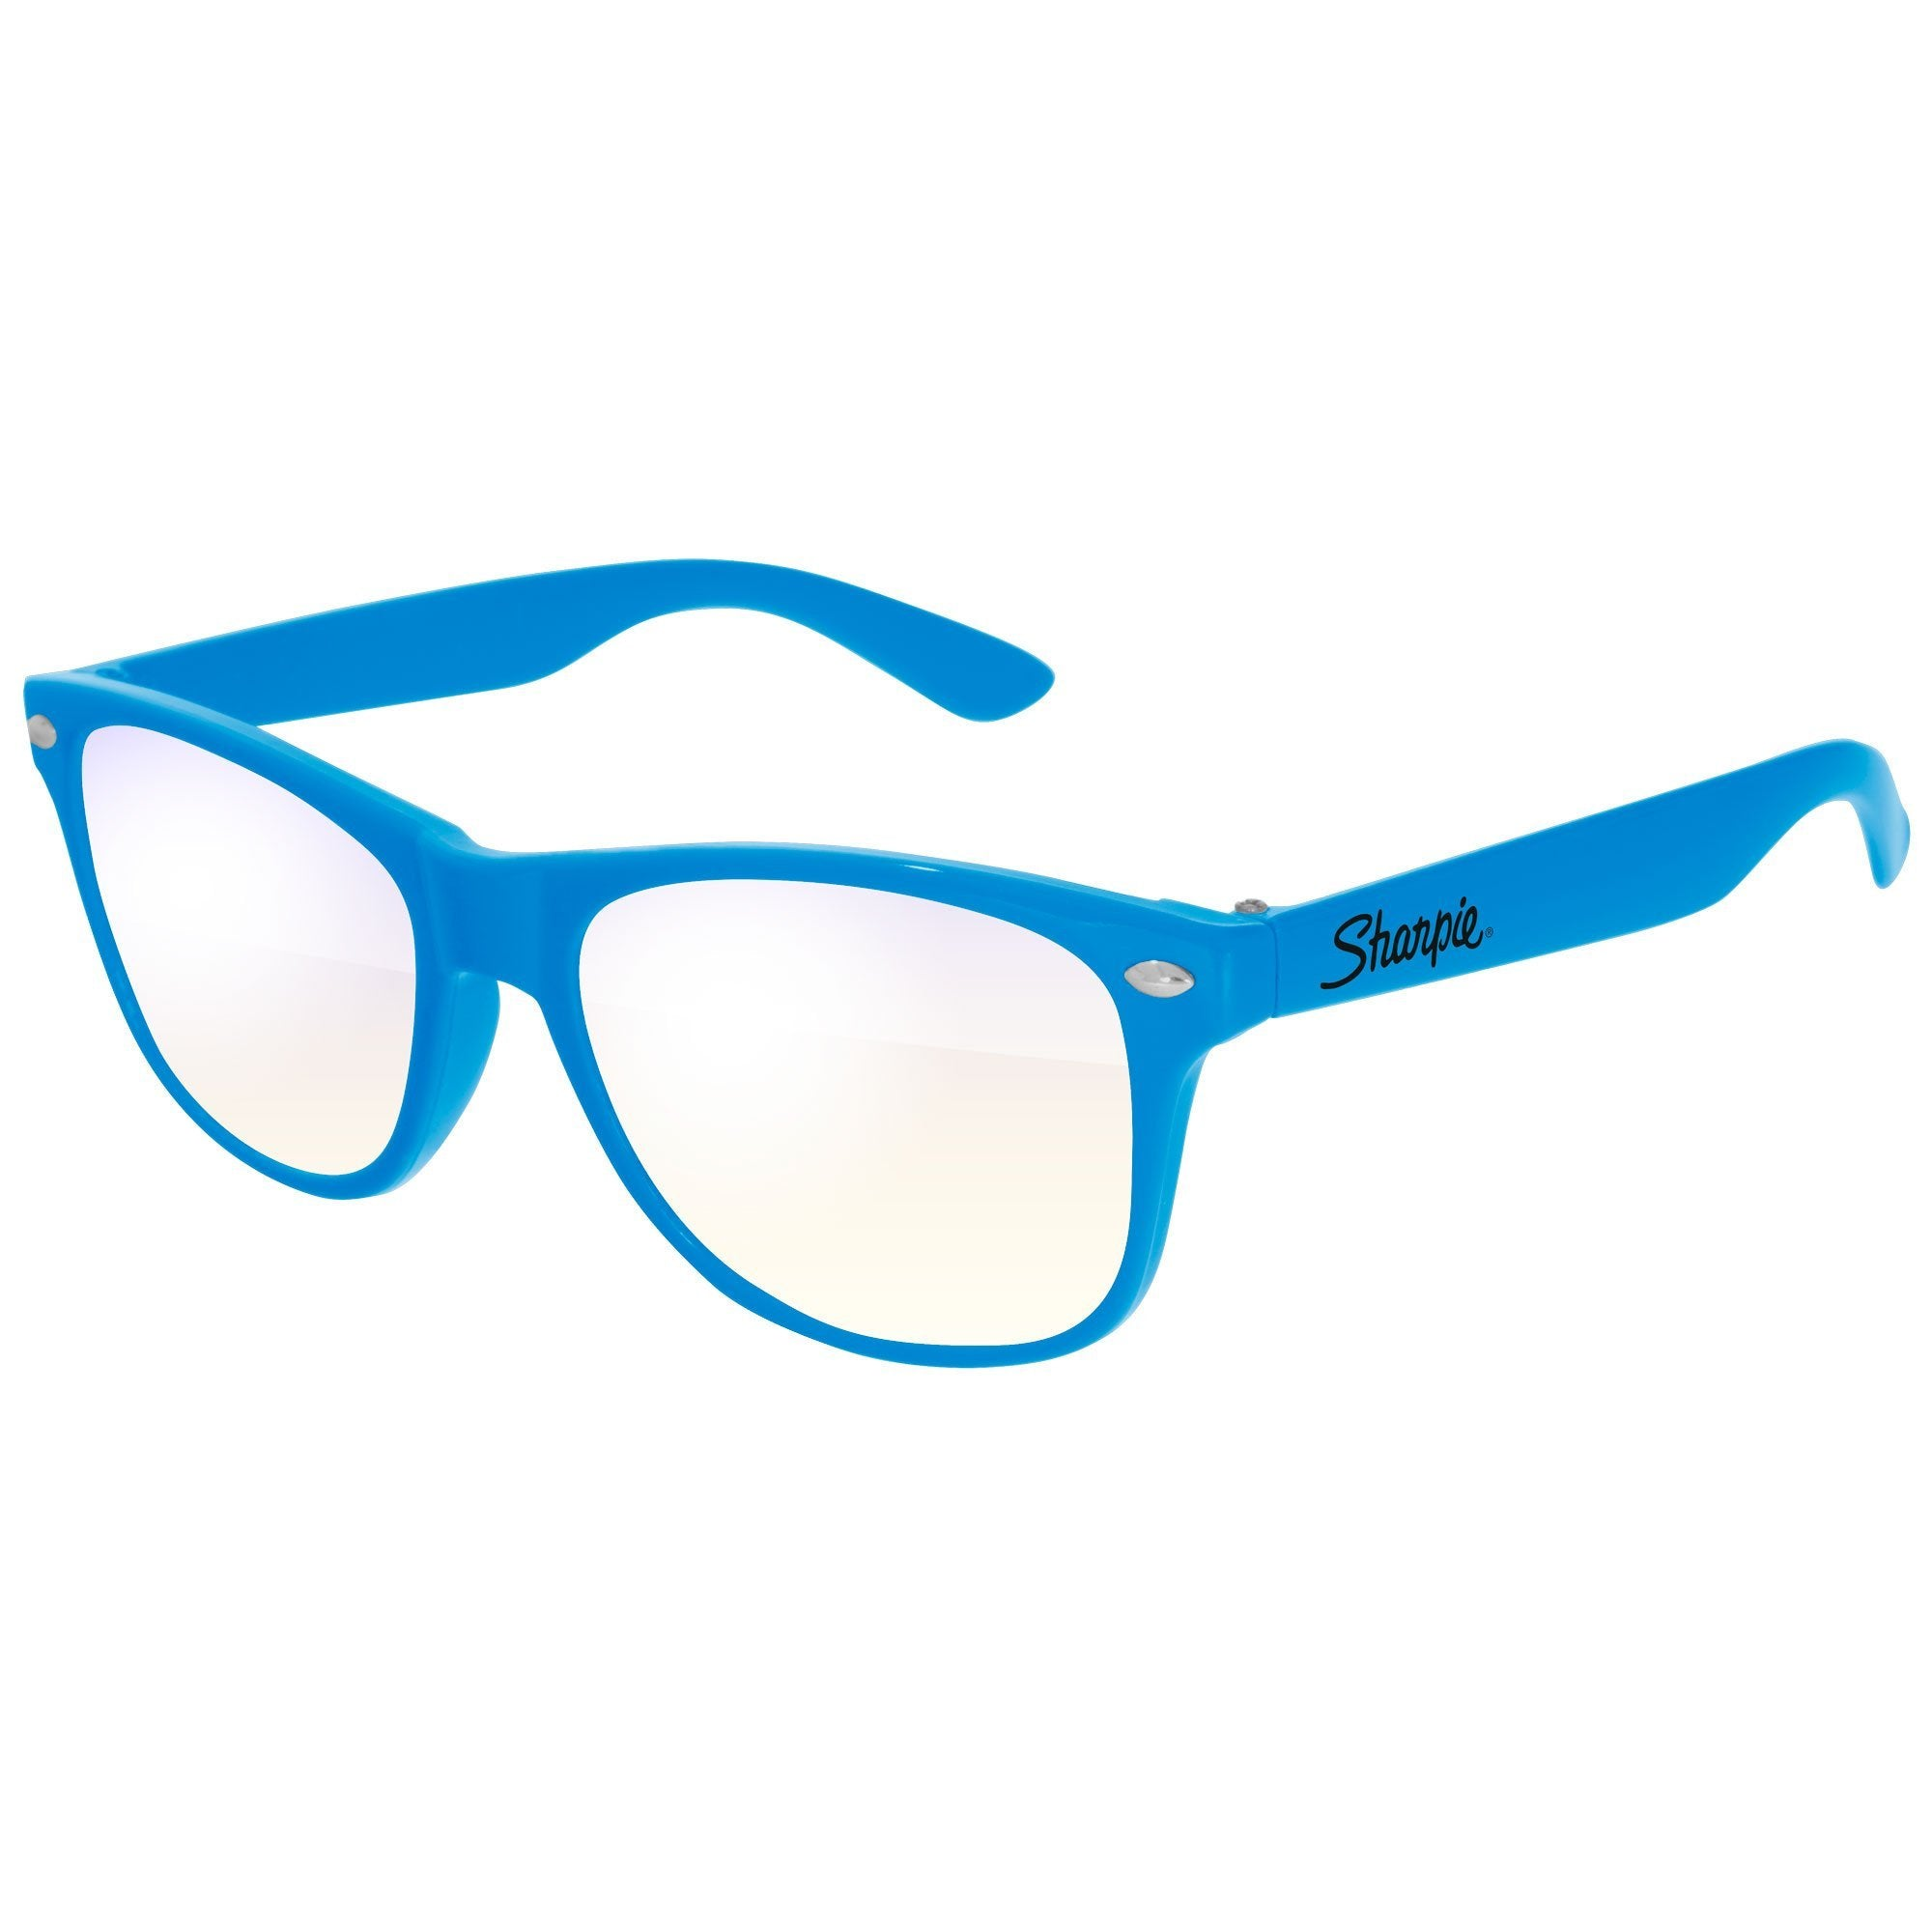 RB010-K -Kids Blue Light Blocking Retro Promotional Glasses w/ 1-color imprint